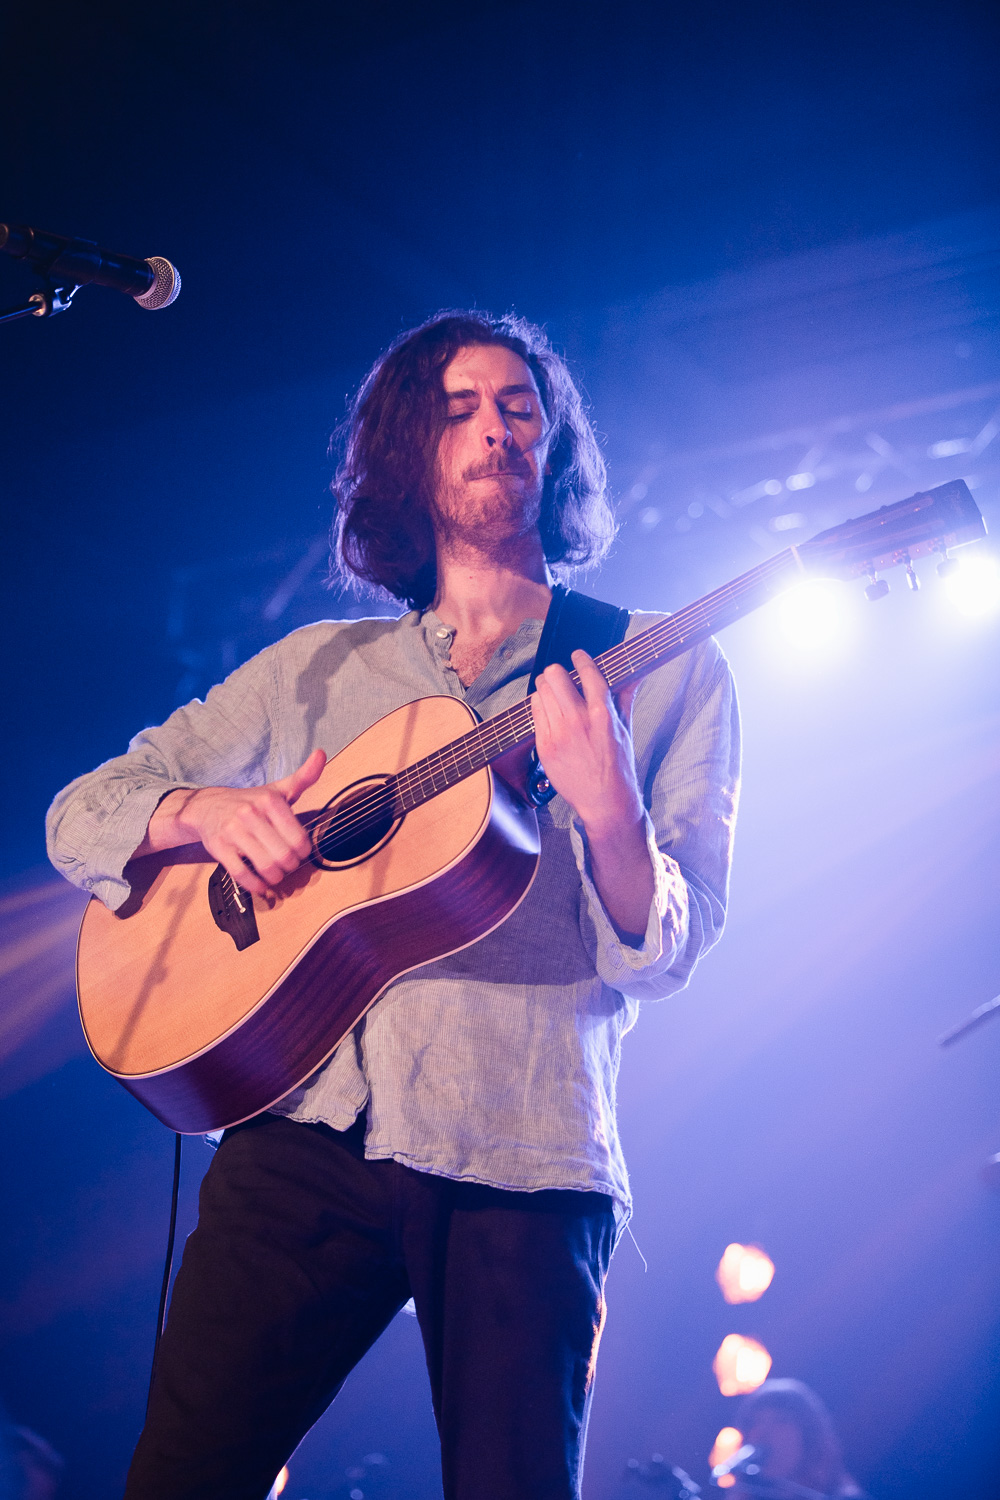 Guitairst, singer and songwriter, Hozier playing in Salt Lake City. Photo: @Lmsorenson